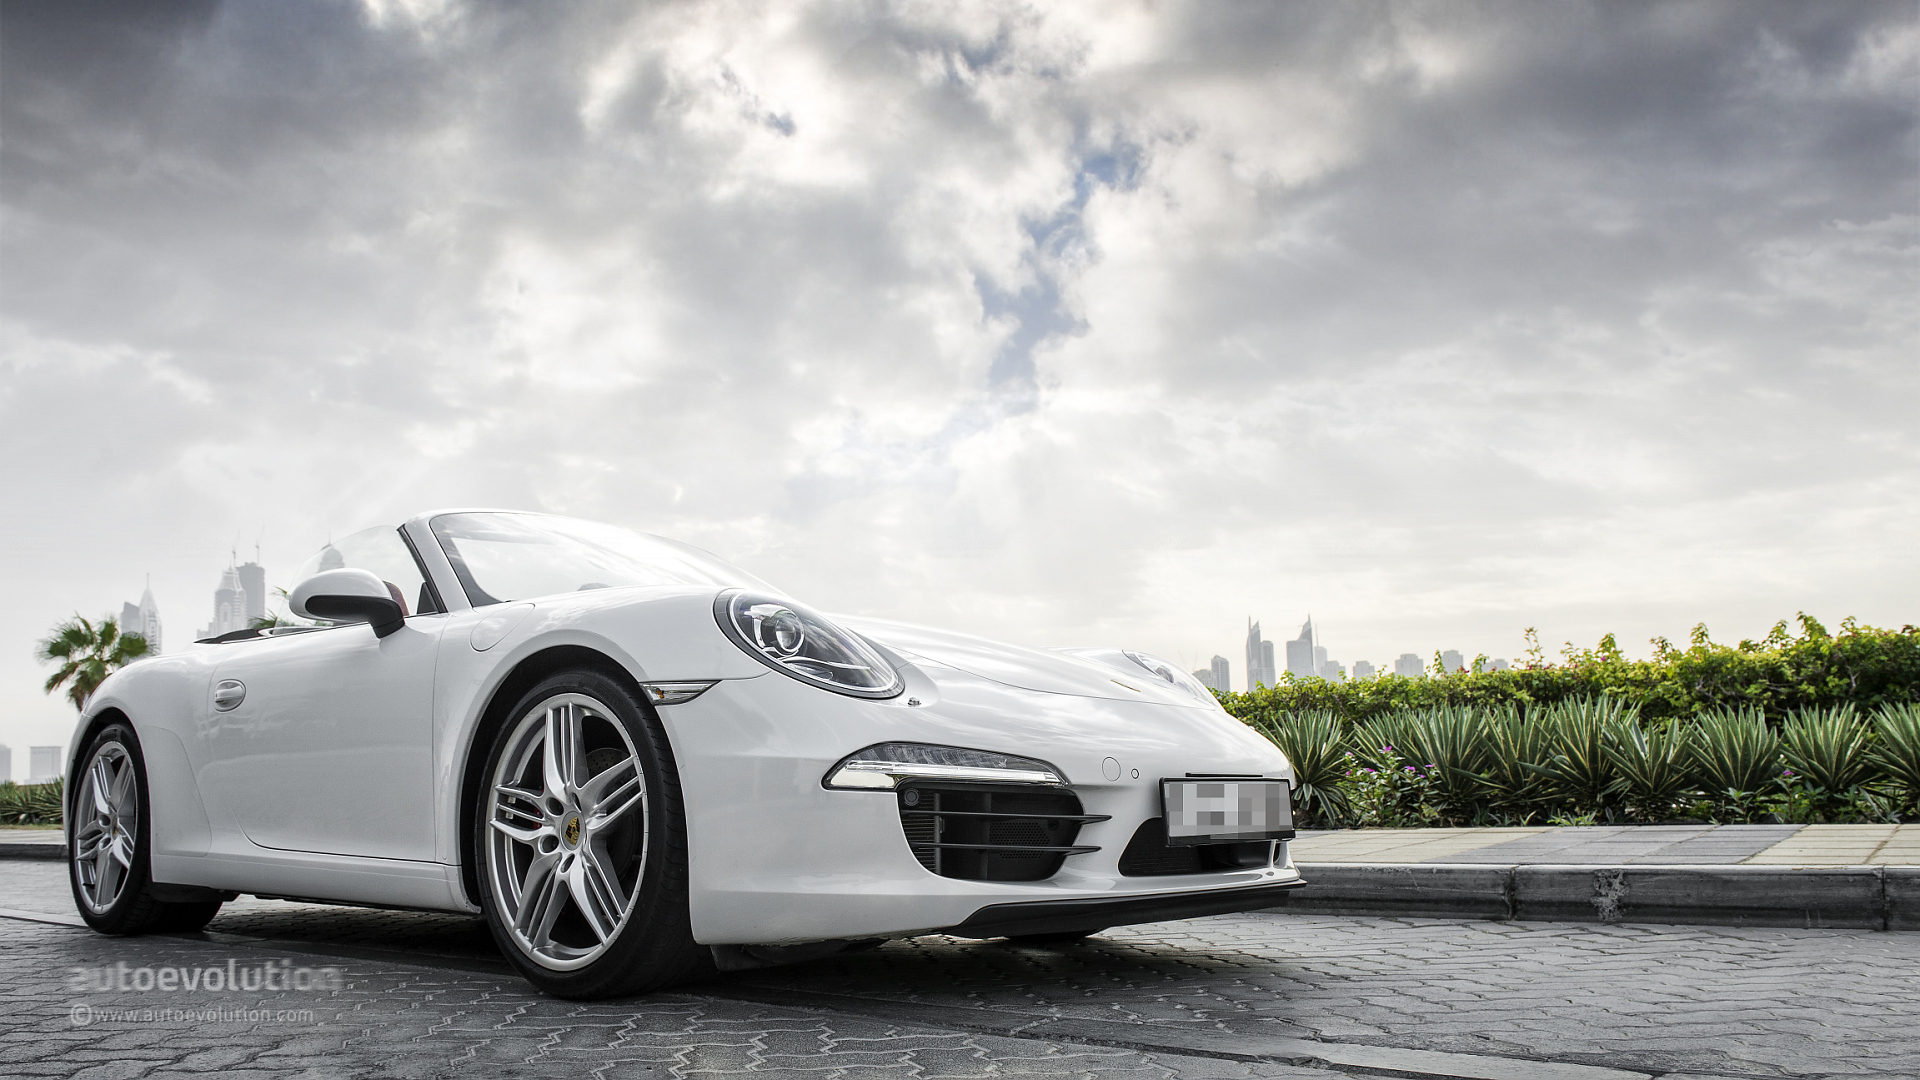 Porsche Recalling 911  Boxster And Cayman Due To Airbag Issue